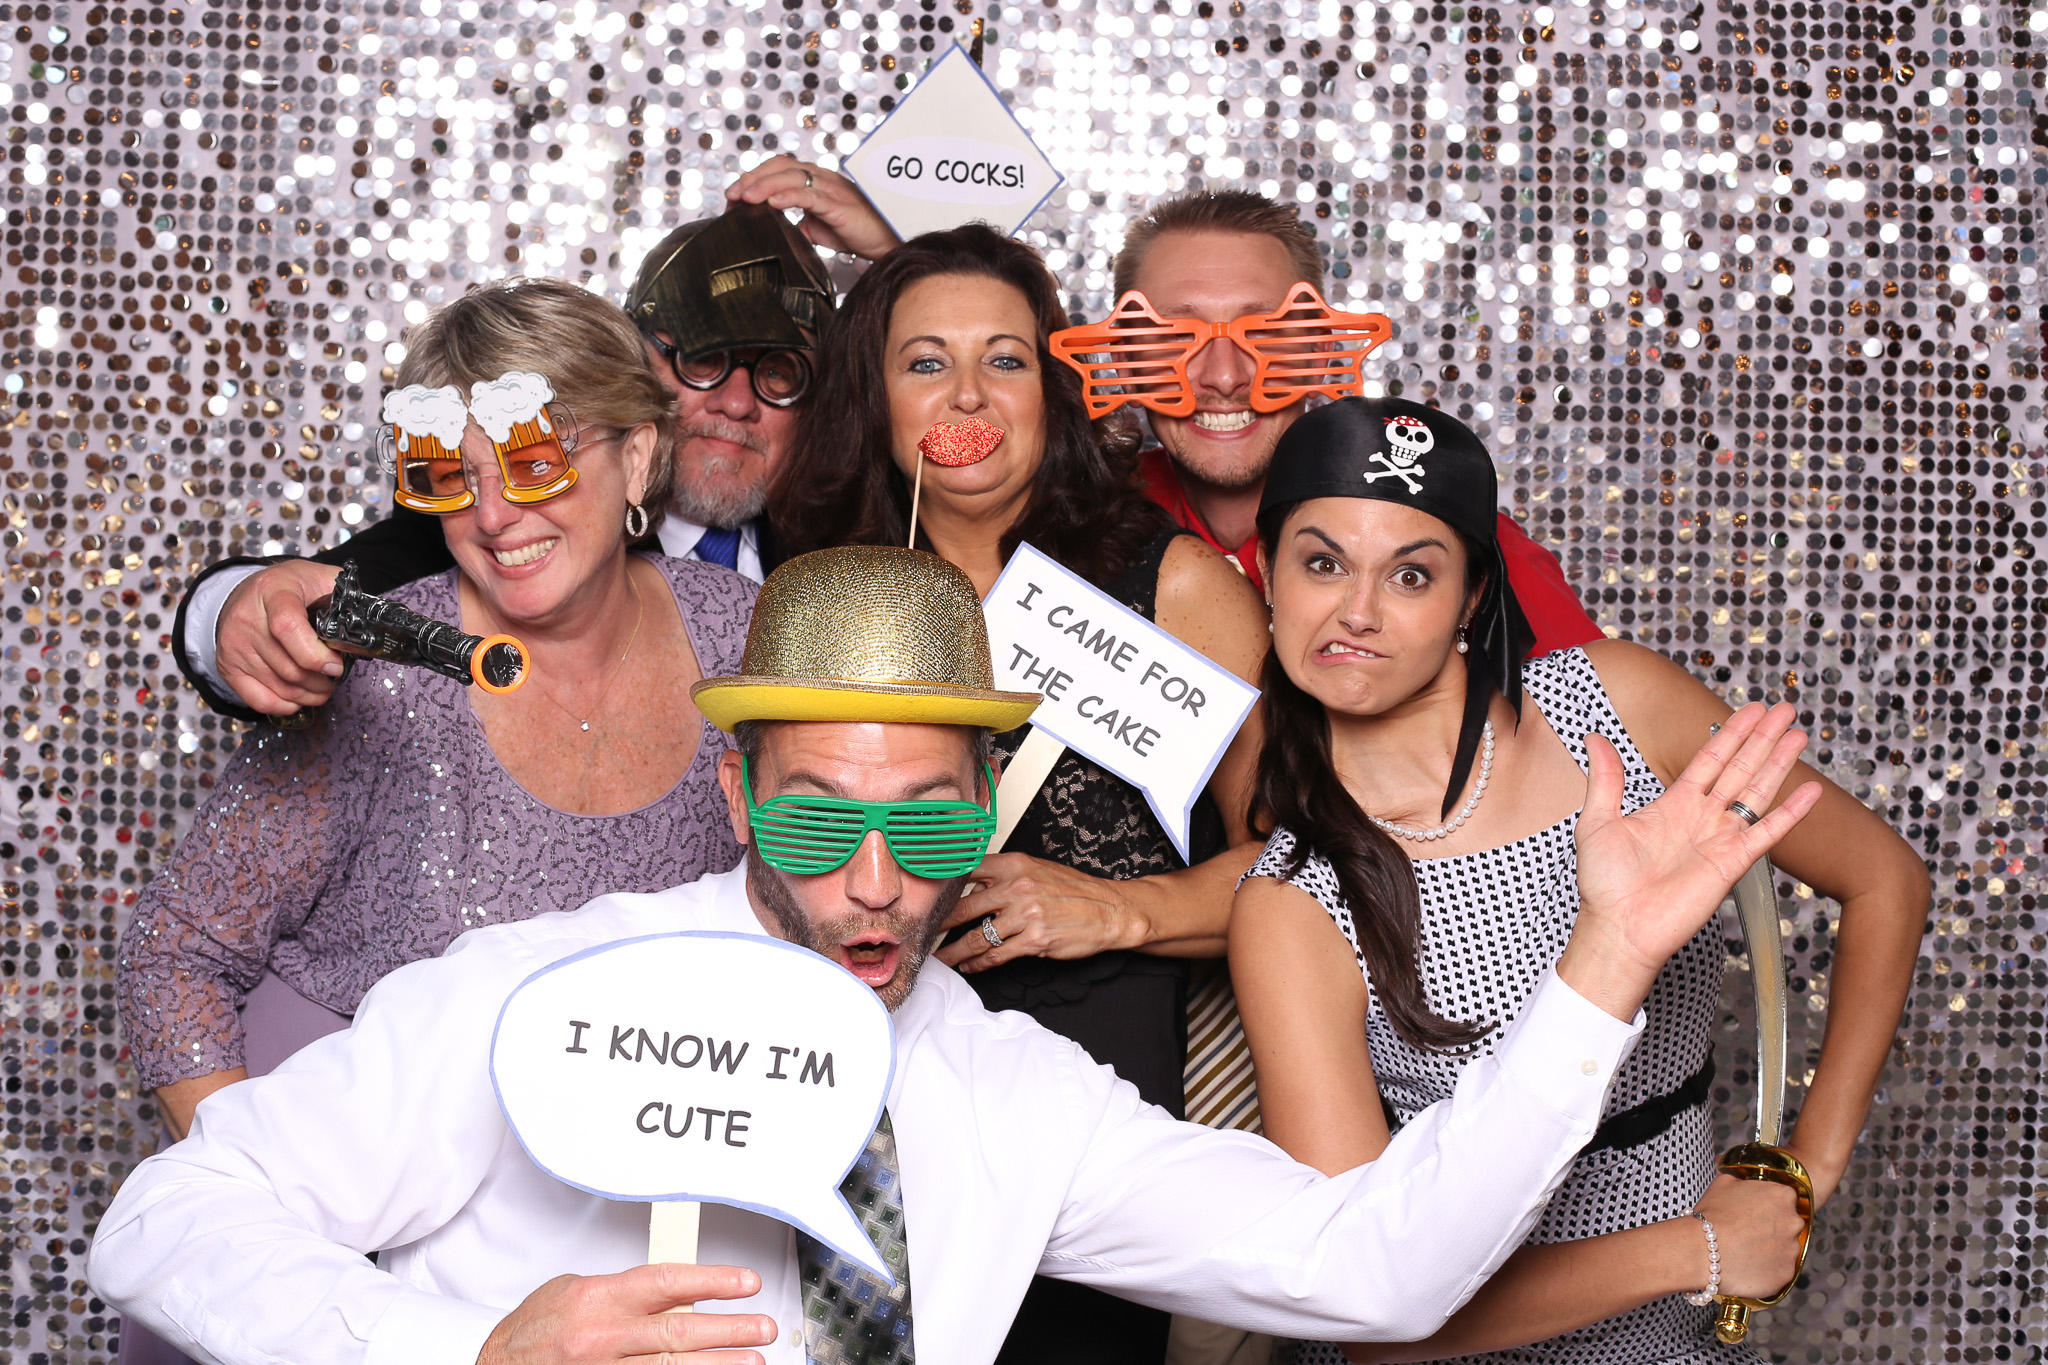 My Party PhotoBooth image 1